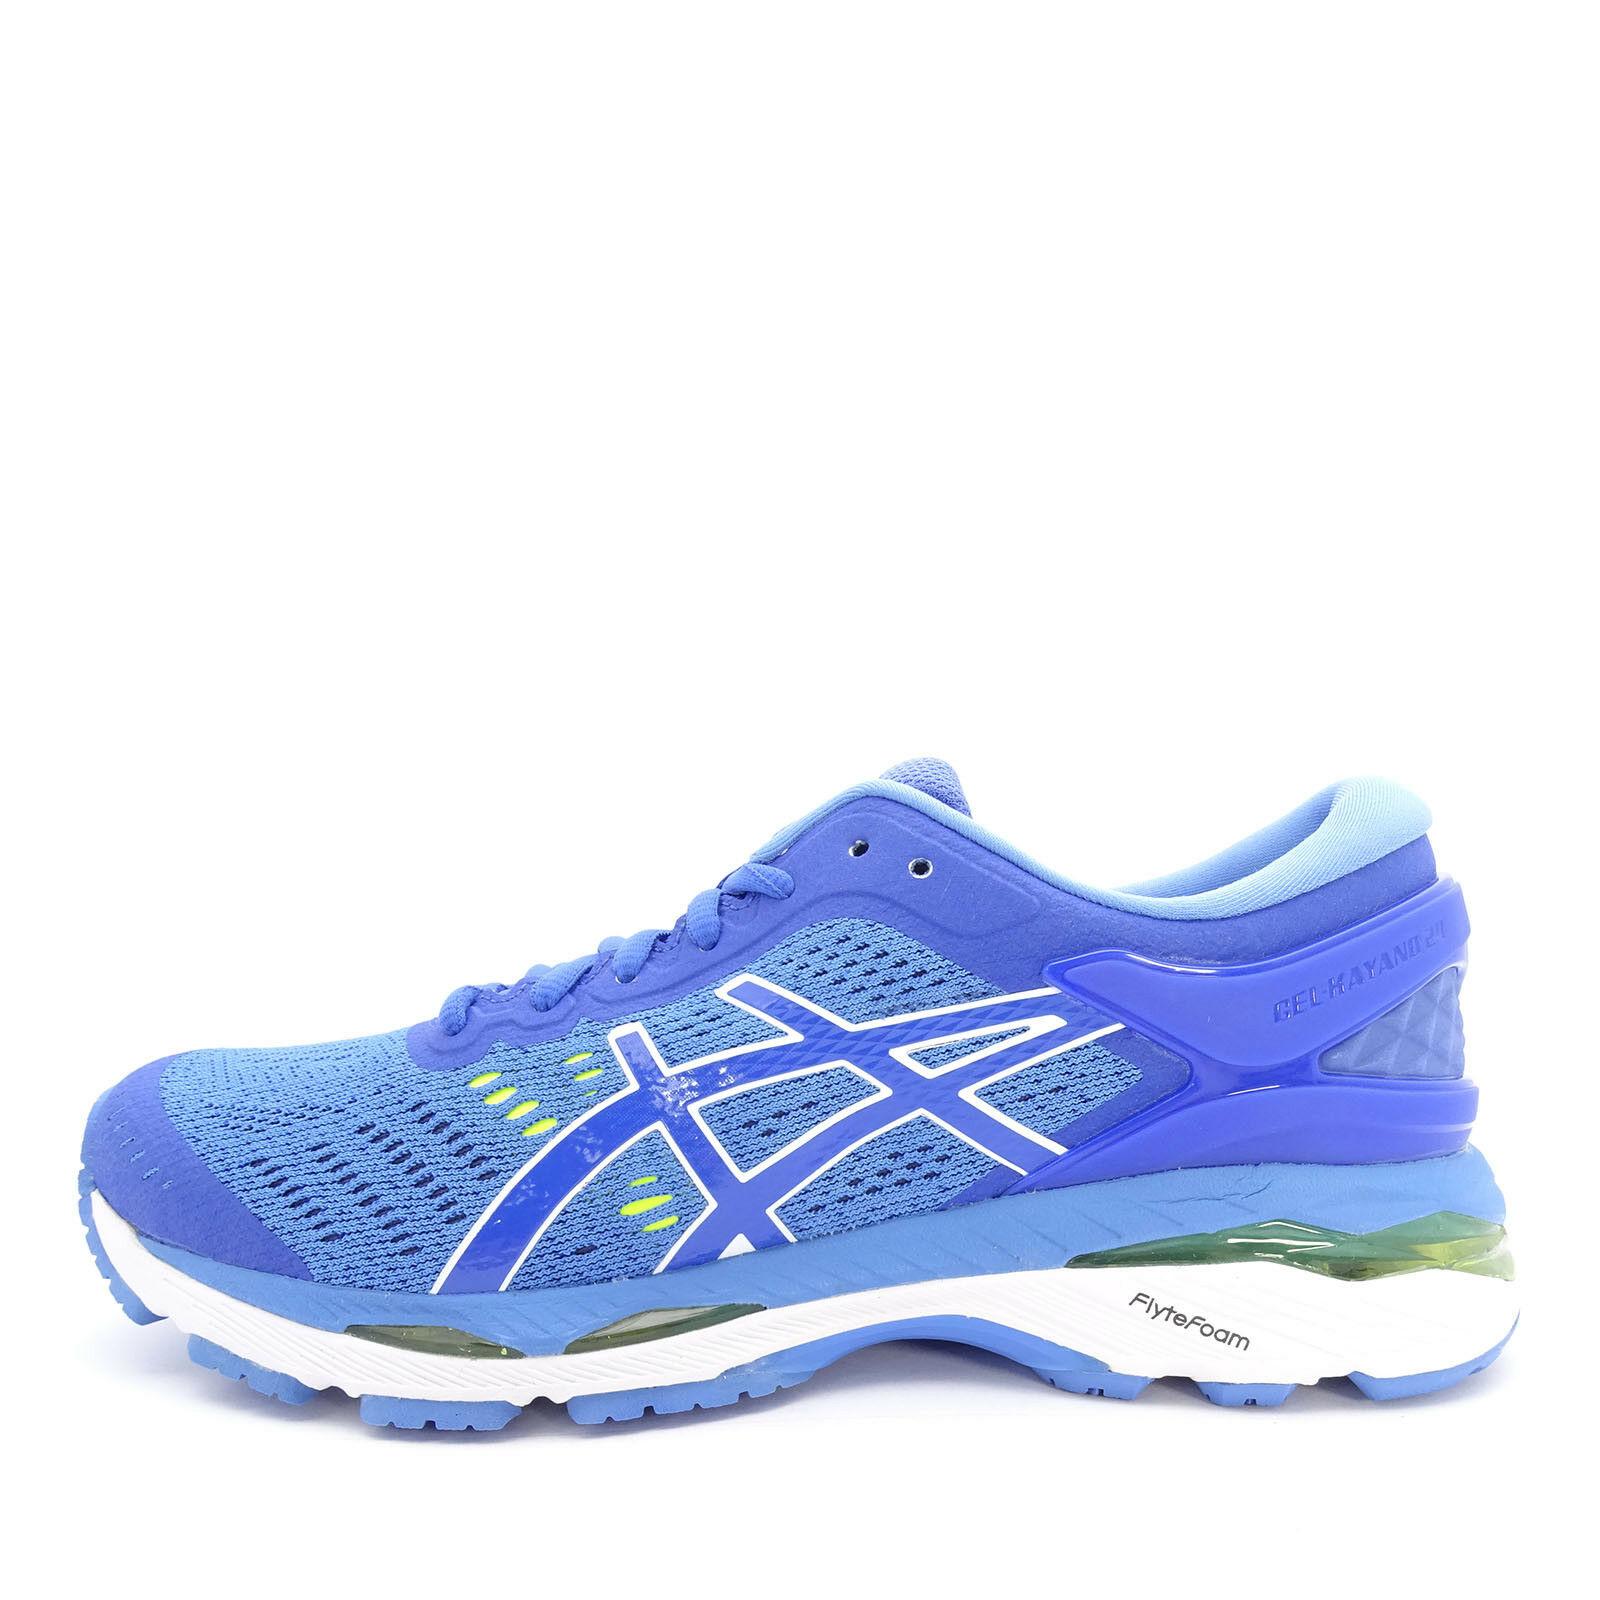 Asics GEL-Kayano 24 [T799N-4840] Women Running shoes  blueee Purple White  export outlet